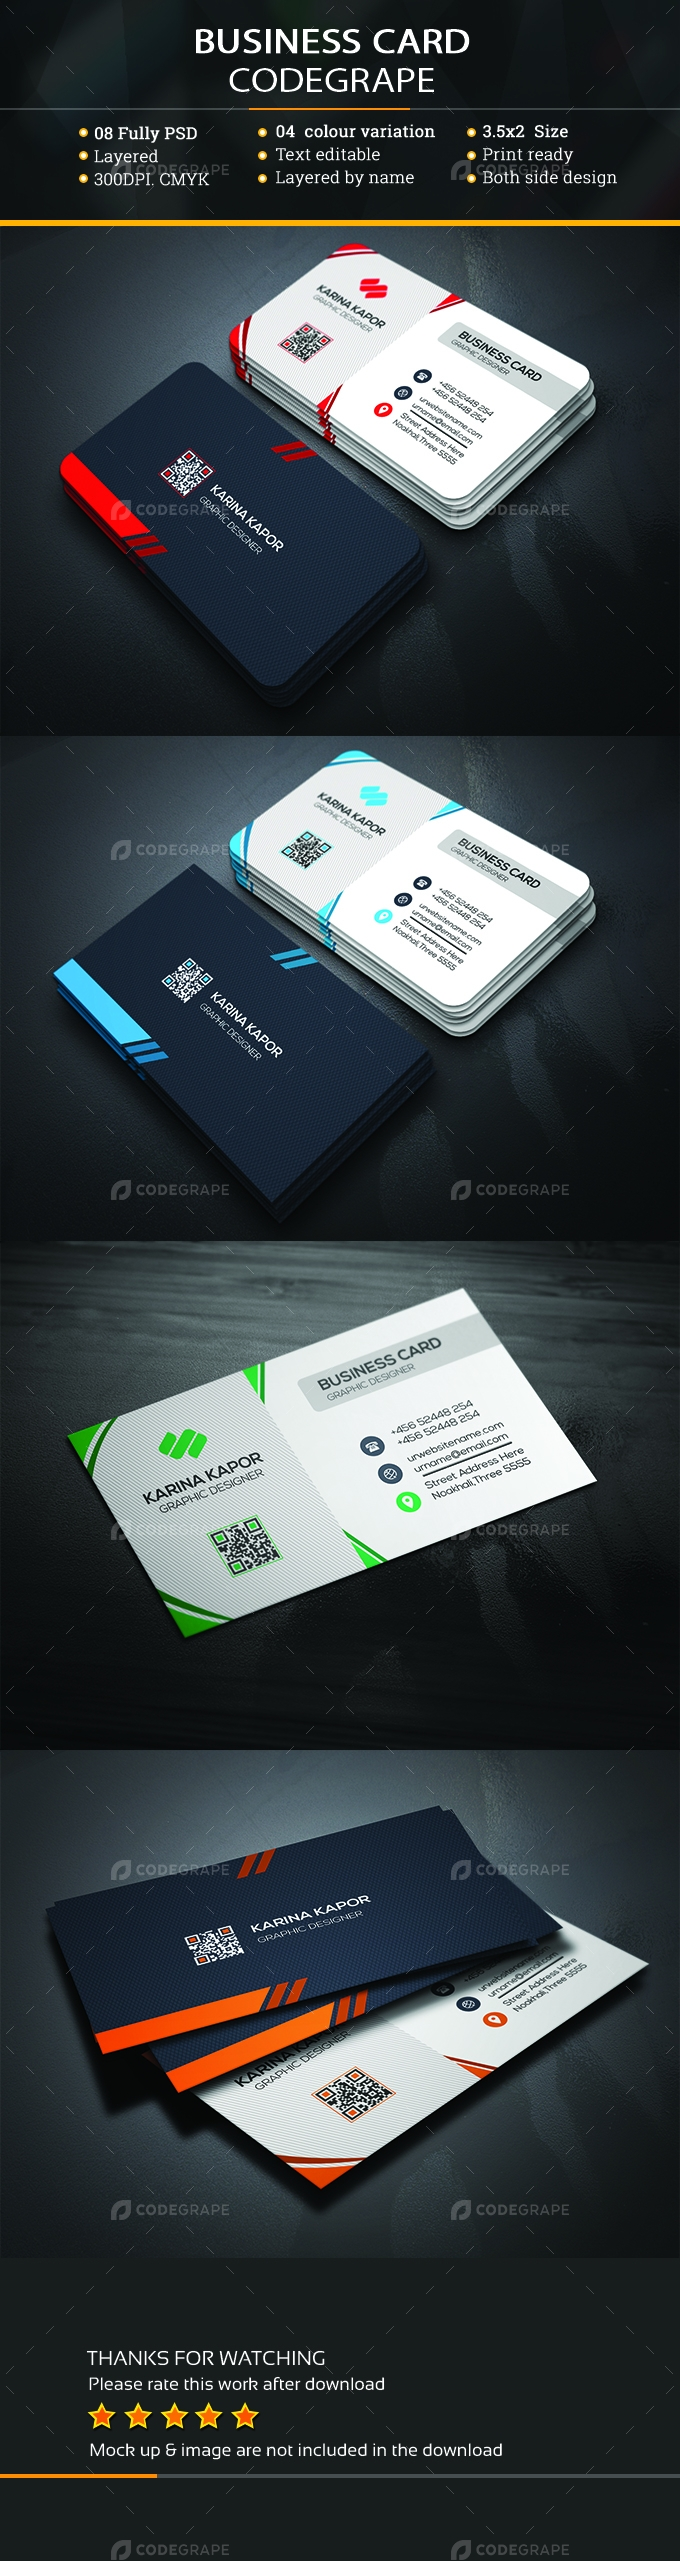 Robles Business Card